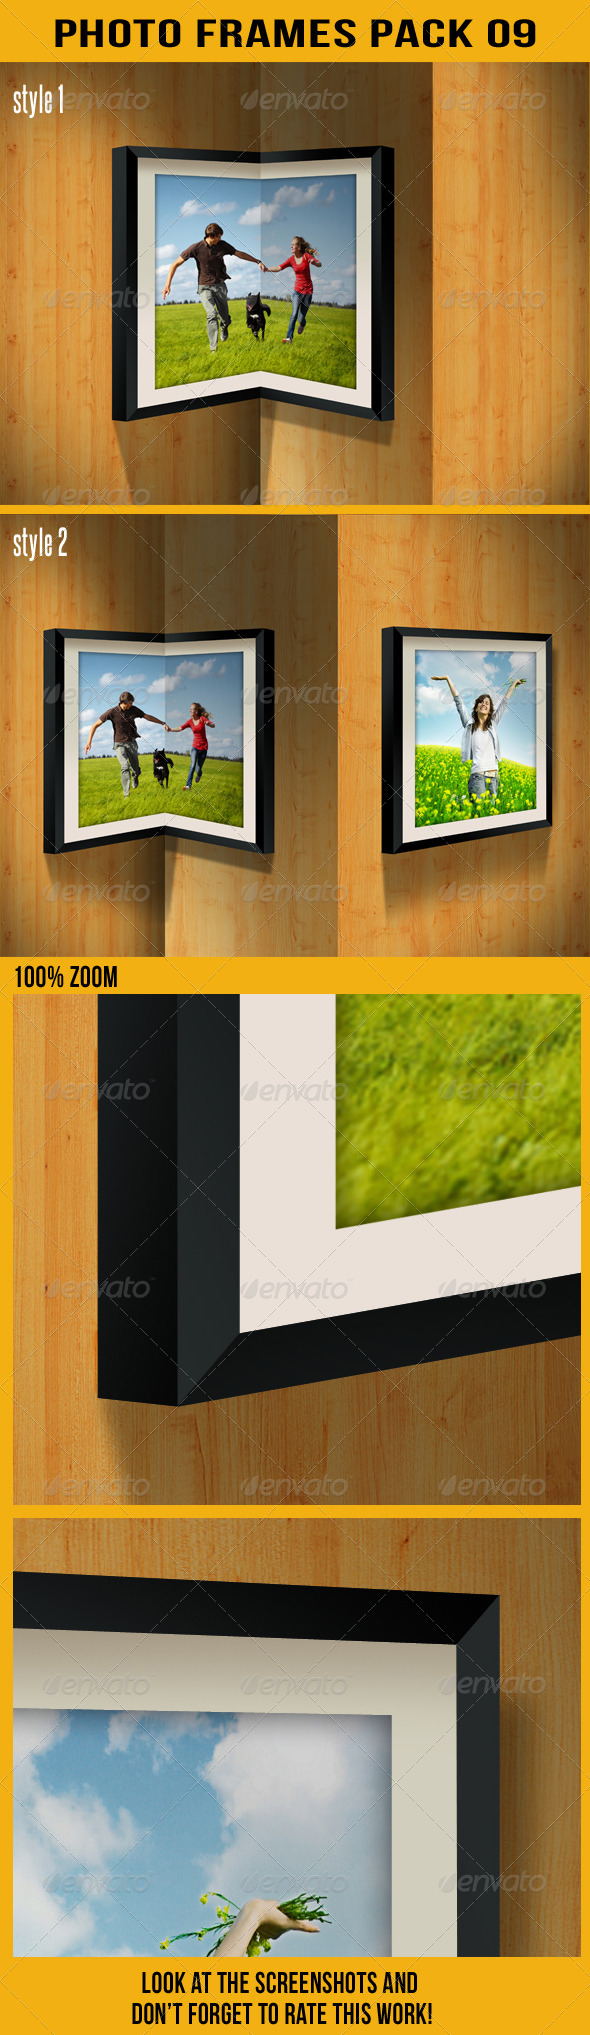 Photo Frames Pack 09 - Artistic Photo Templates